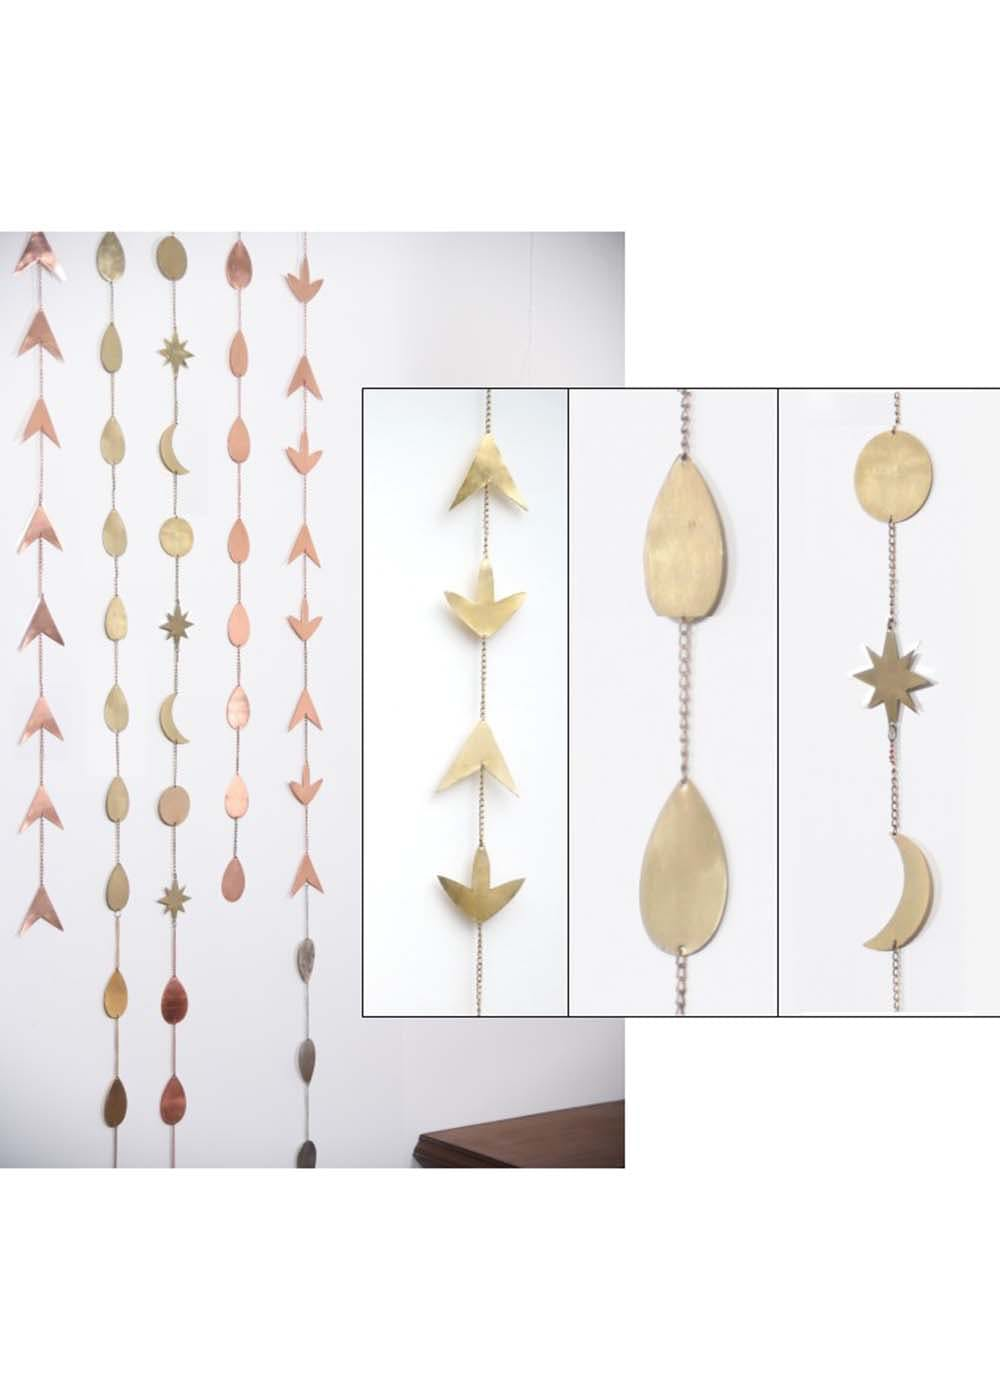 Set of 3 Metal Wall Mobile Bead Curtain Strings Handmade in Gold Finish